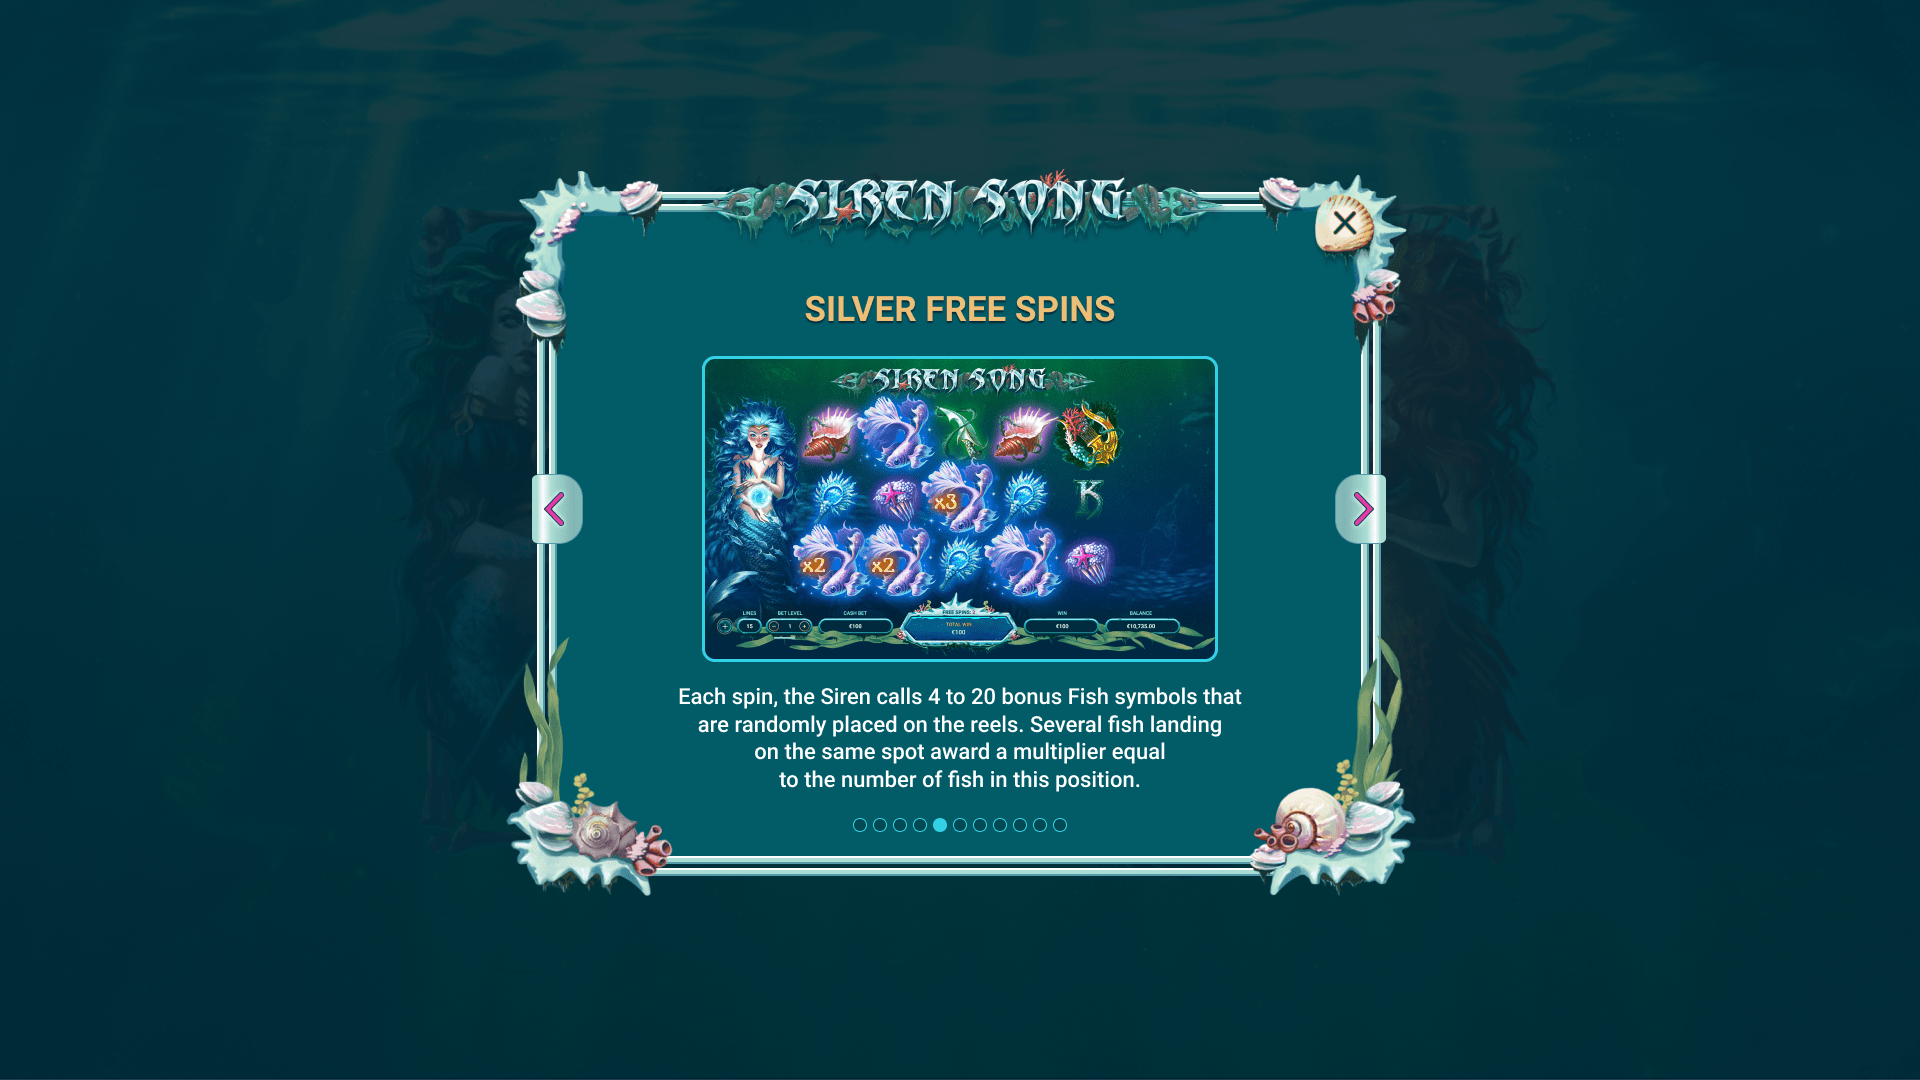 SILVER FREE SPINS